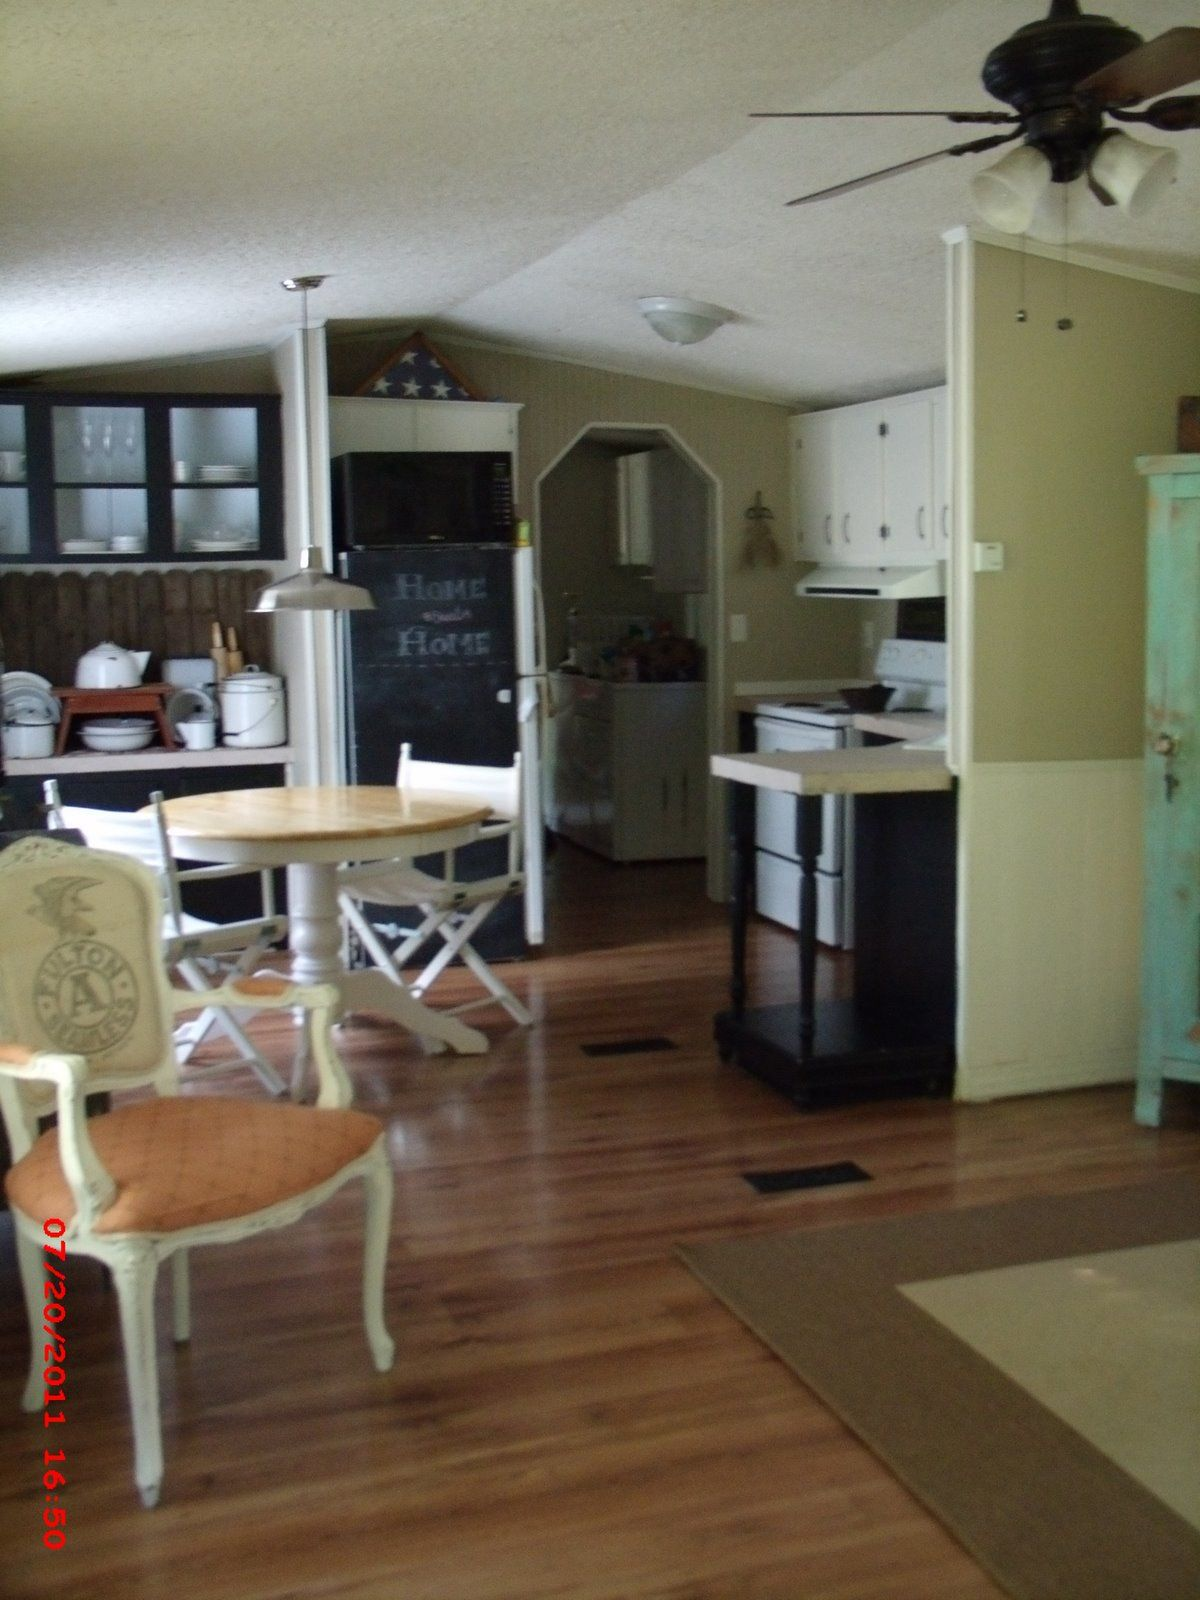 kitchen ideas for single wide mobile homes mobile home kitchen remodel 17 Images About Single Wide Mobile Home Renos On